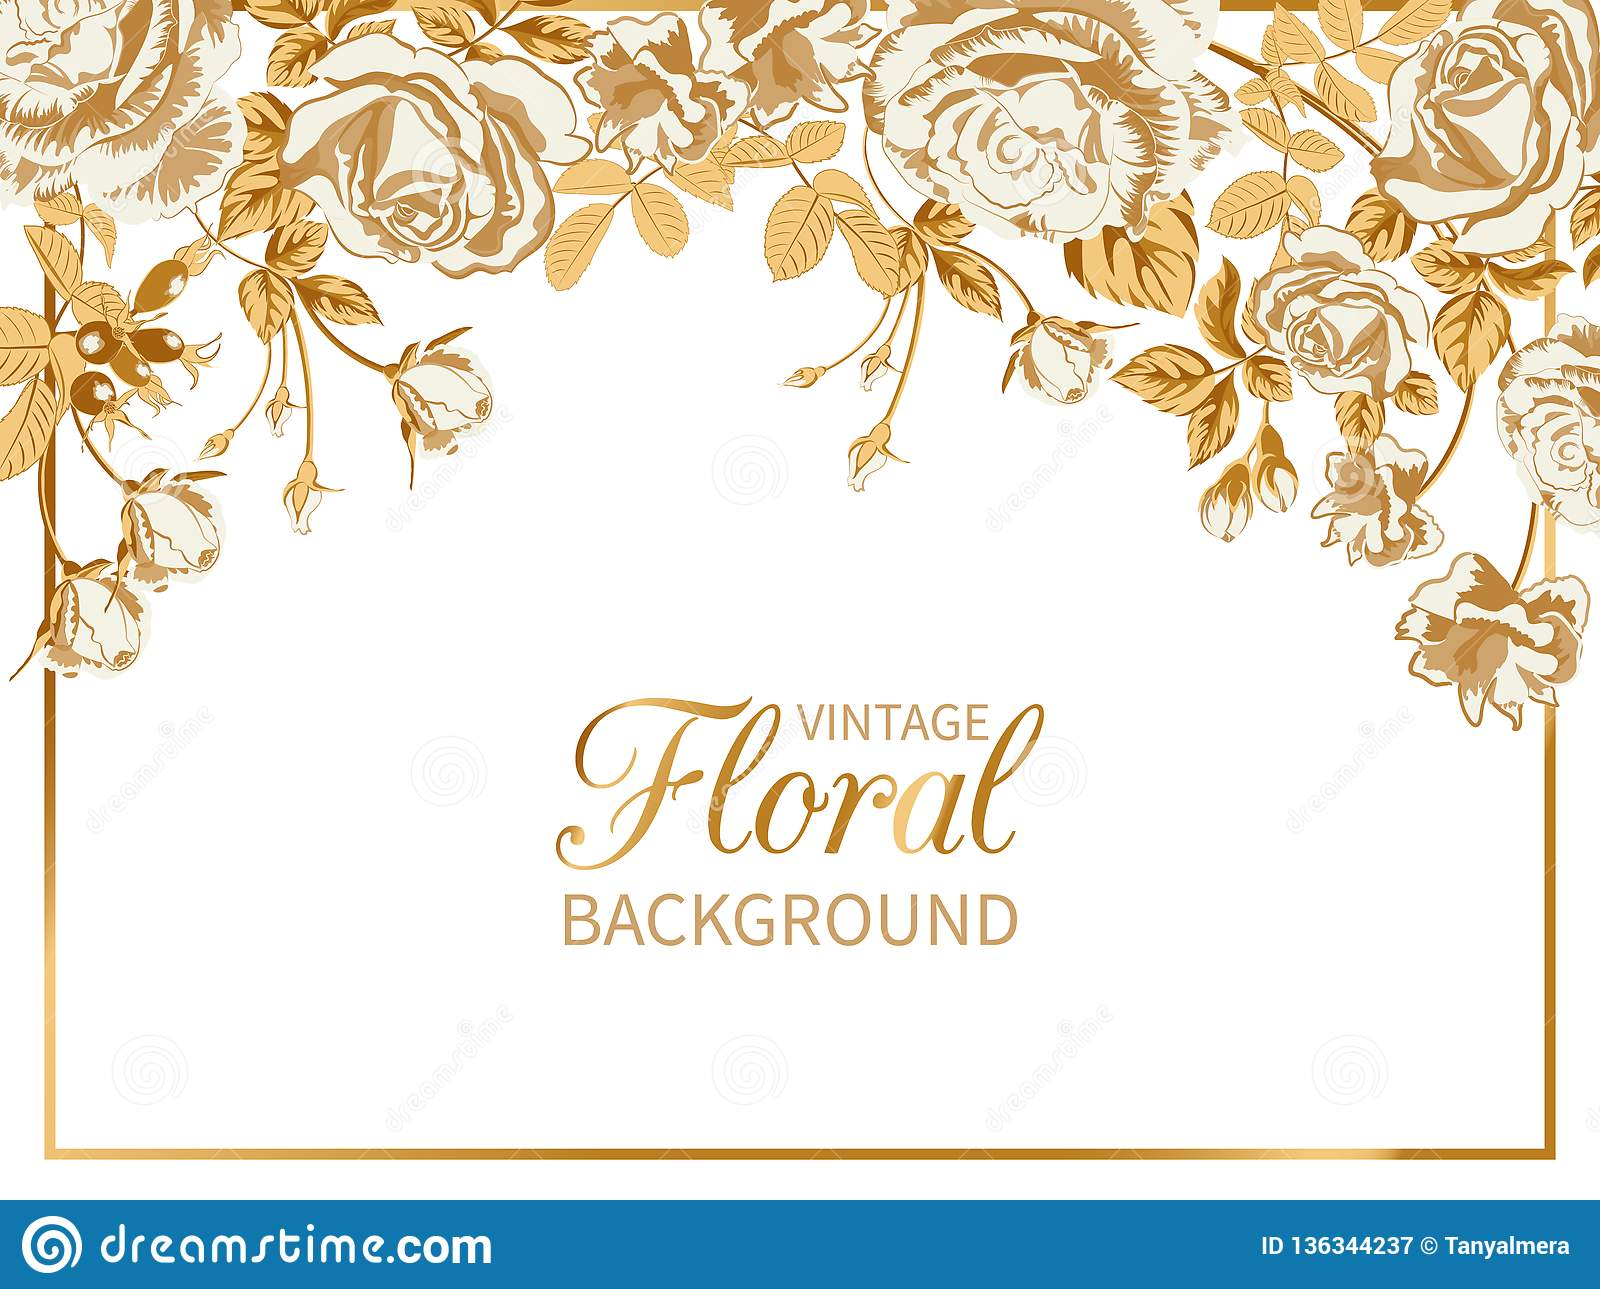 Vintage Floral Background With Frame Of Golden Roses Stock Vector